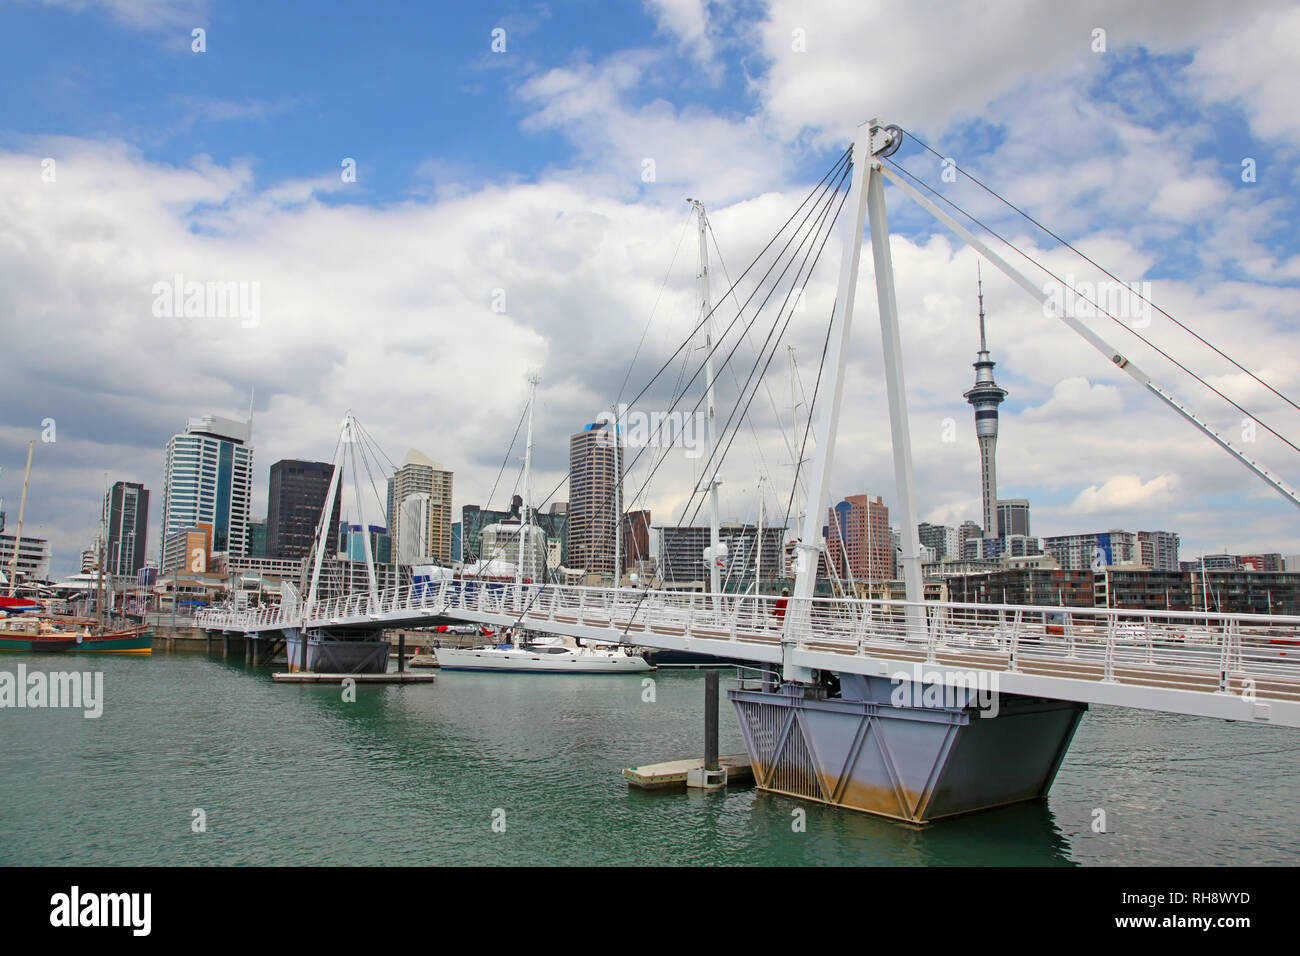 City view of Auckland, with high rise skyscrappers in the background, Noth Island, New Zealand. - Stock Image